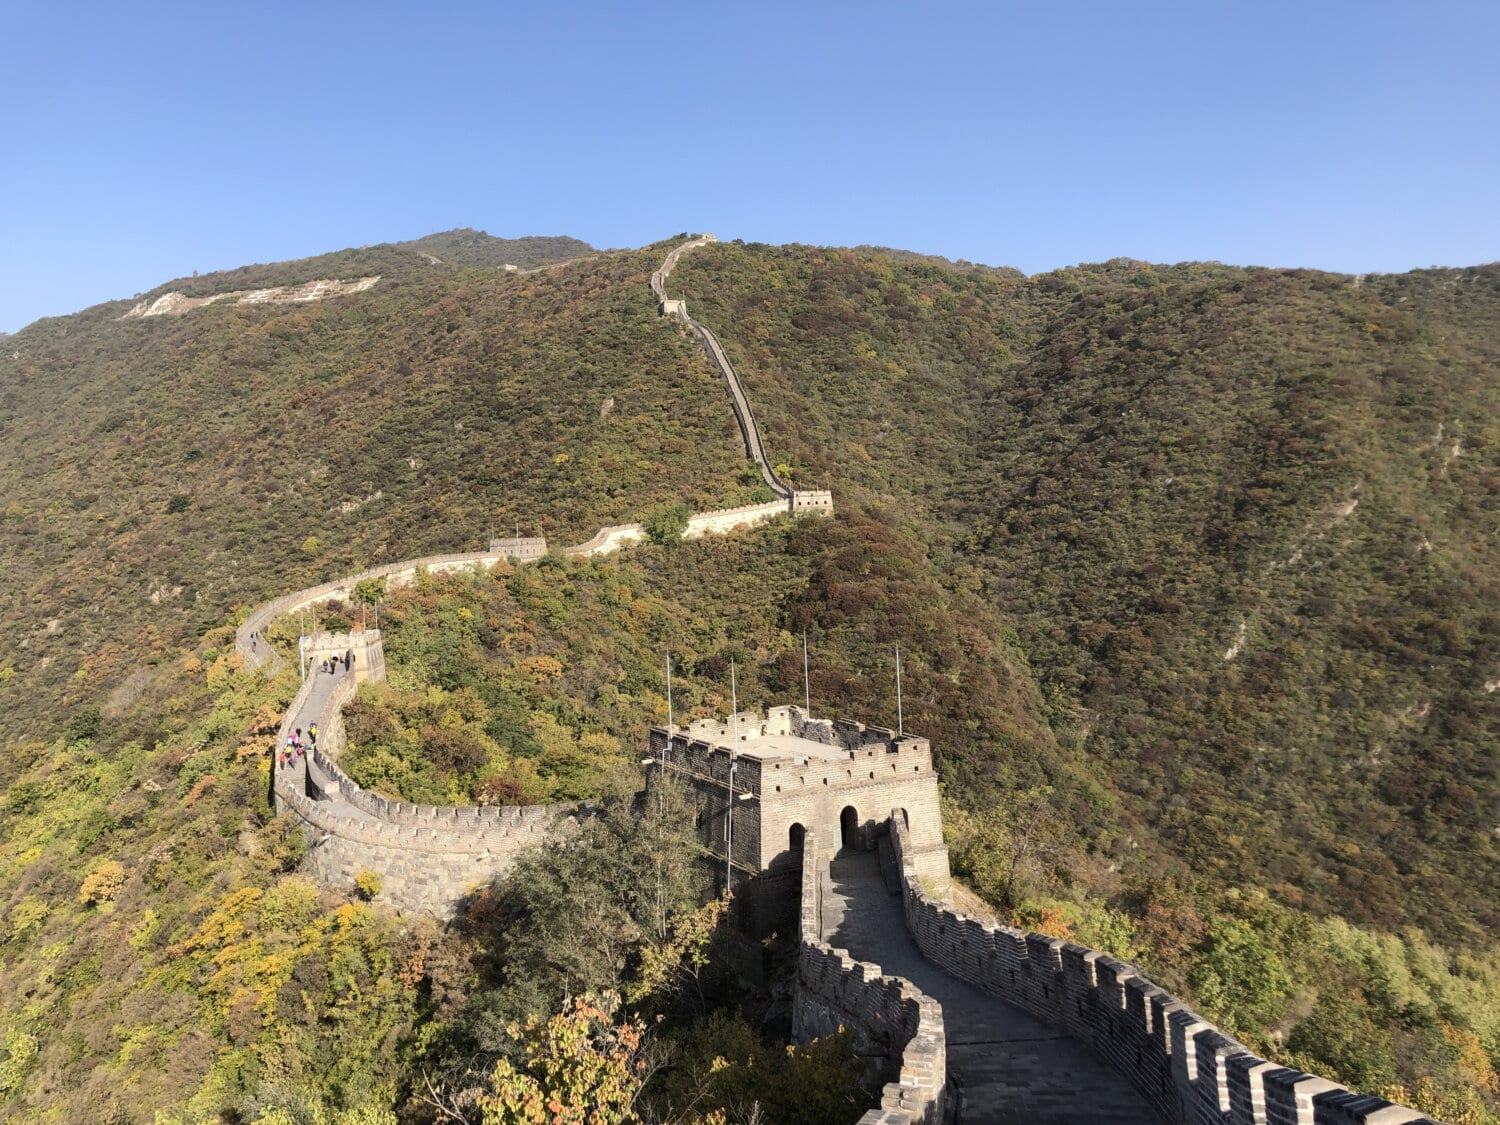 chinese, wall, castle, China, medieval, rampart, landscape, mountain, ascent, architecture